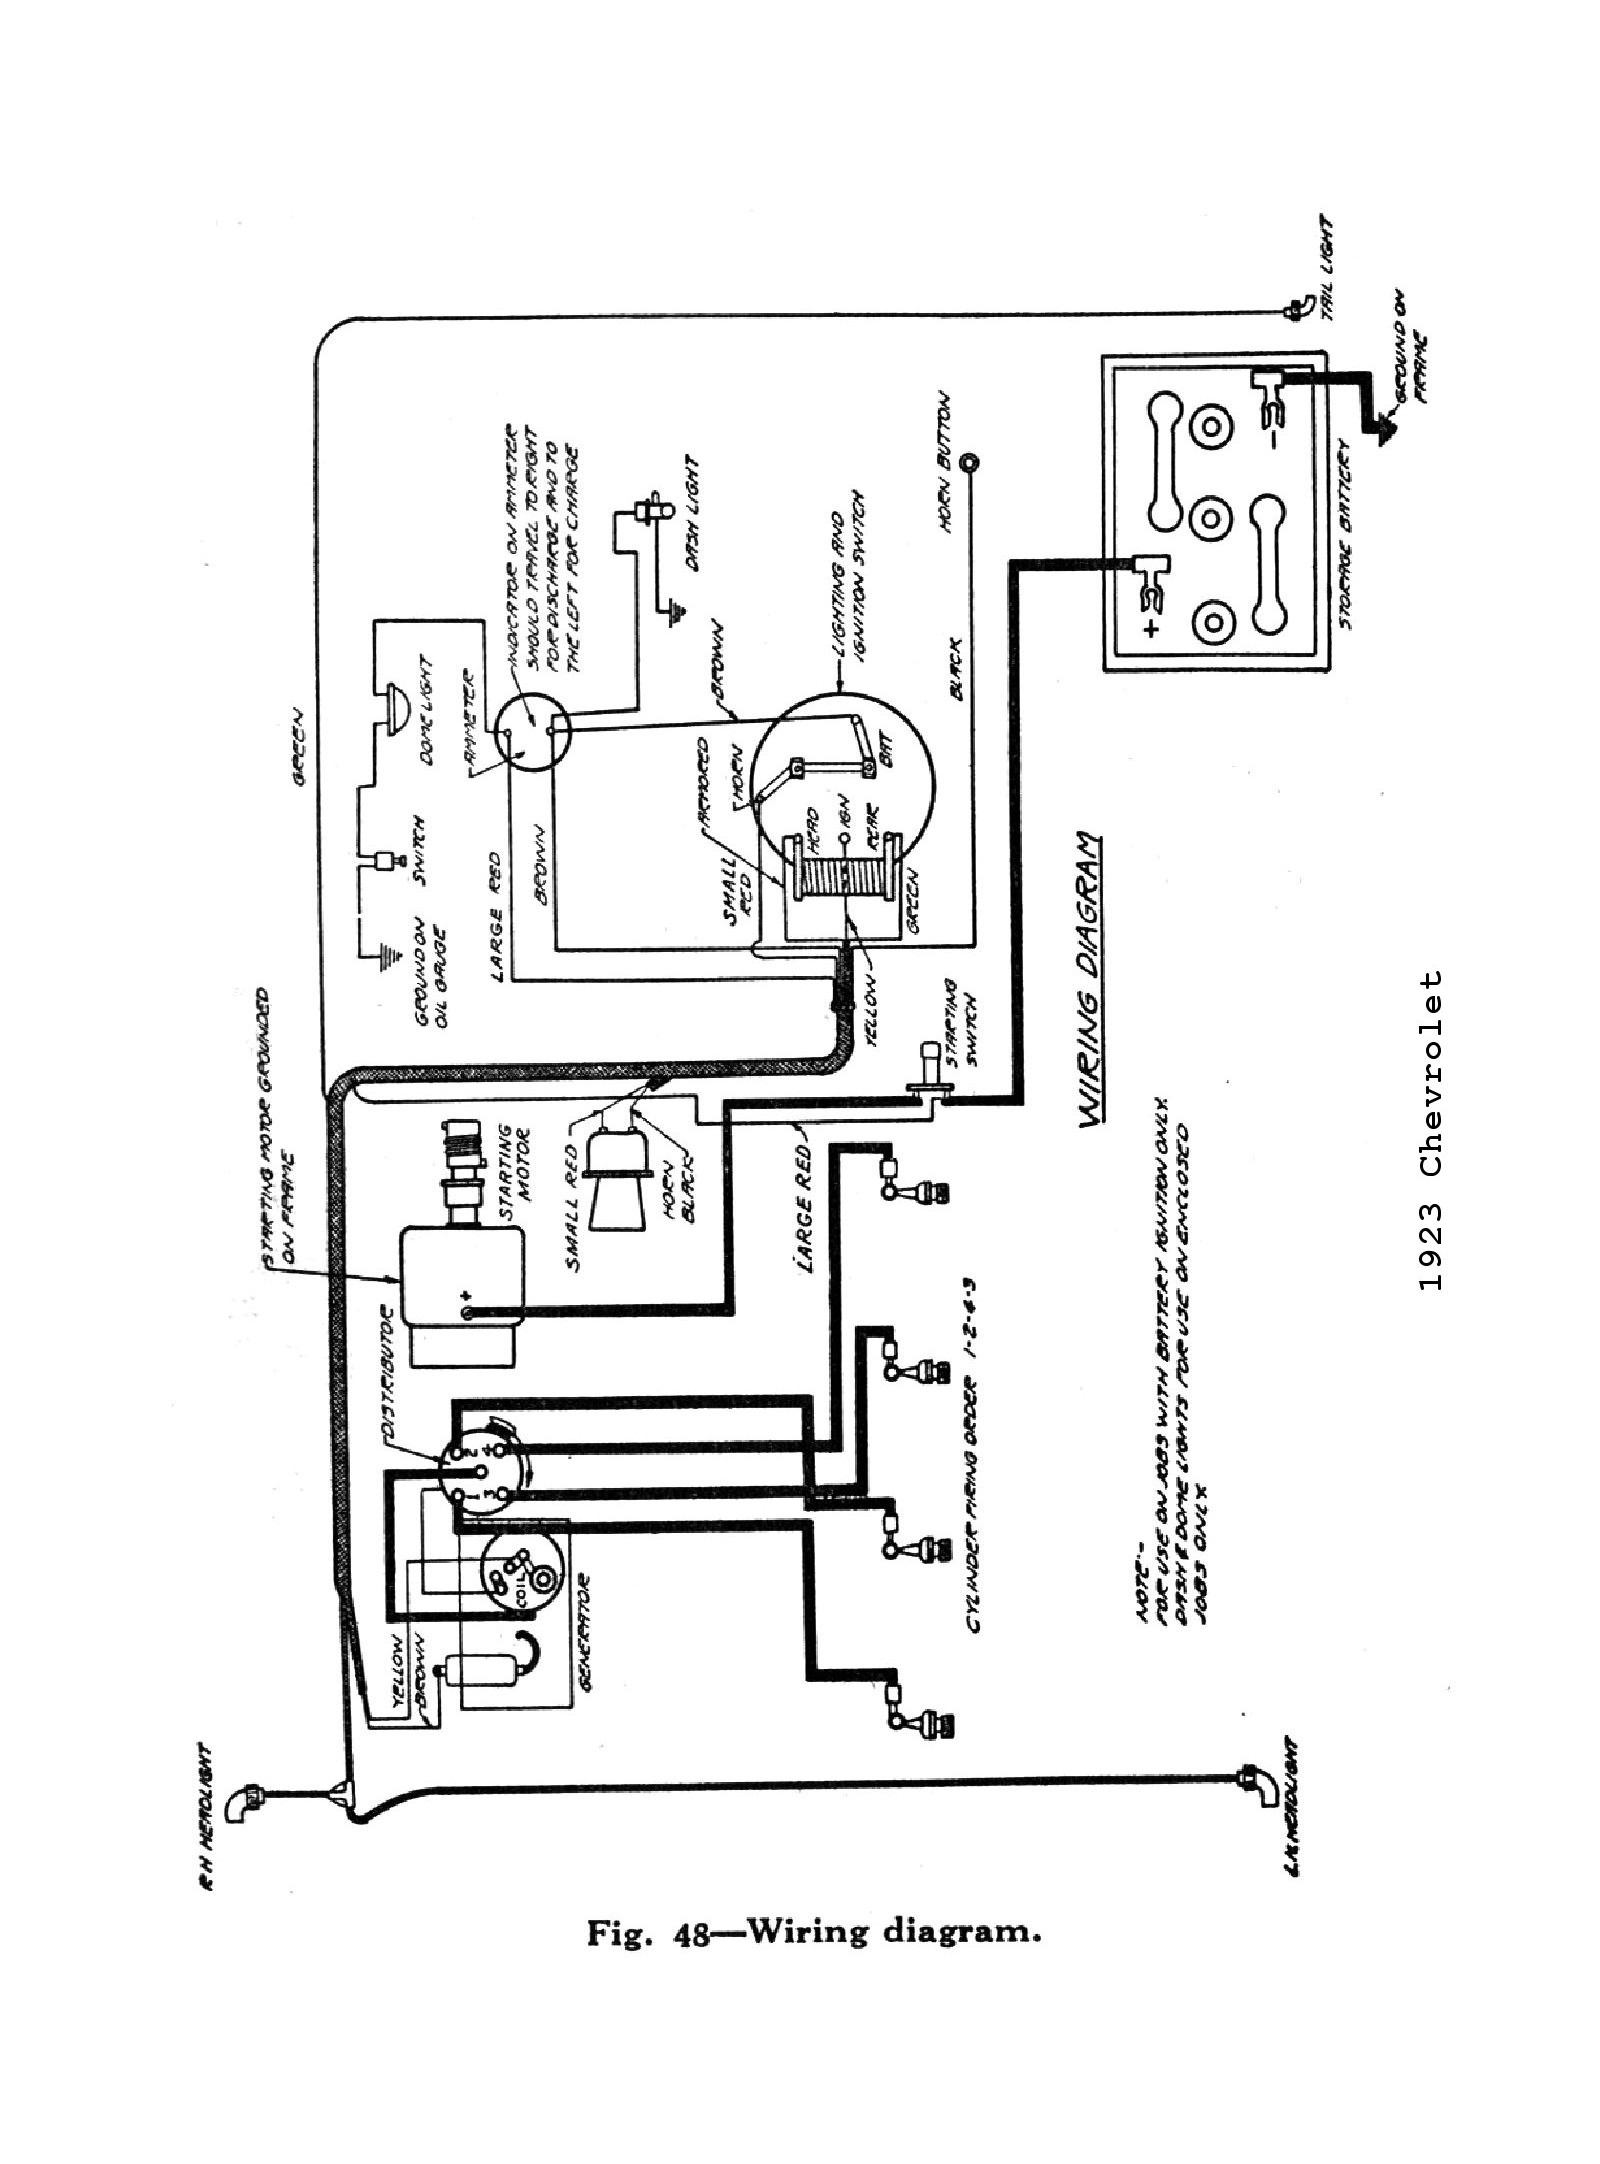 Phenomenal Chevy Wiring Diagrams Wiring 101 Kwecapipaaccommodationcom